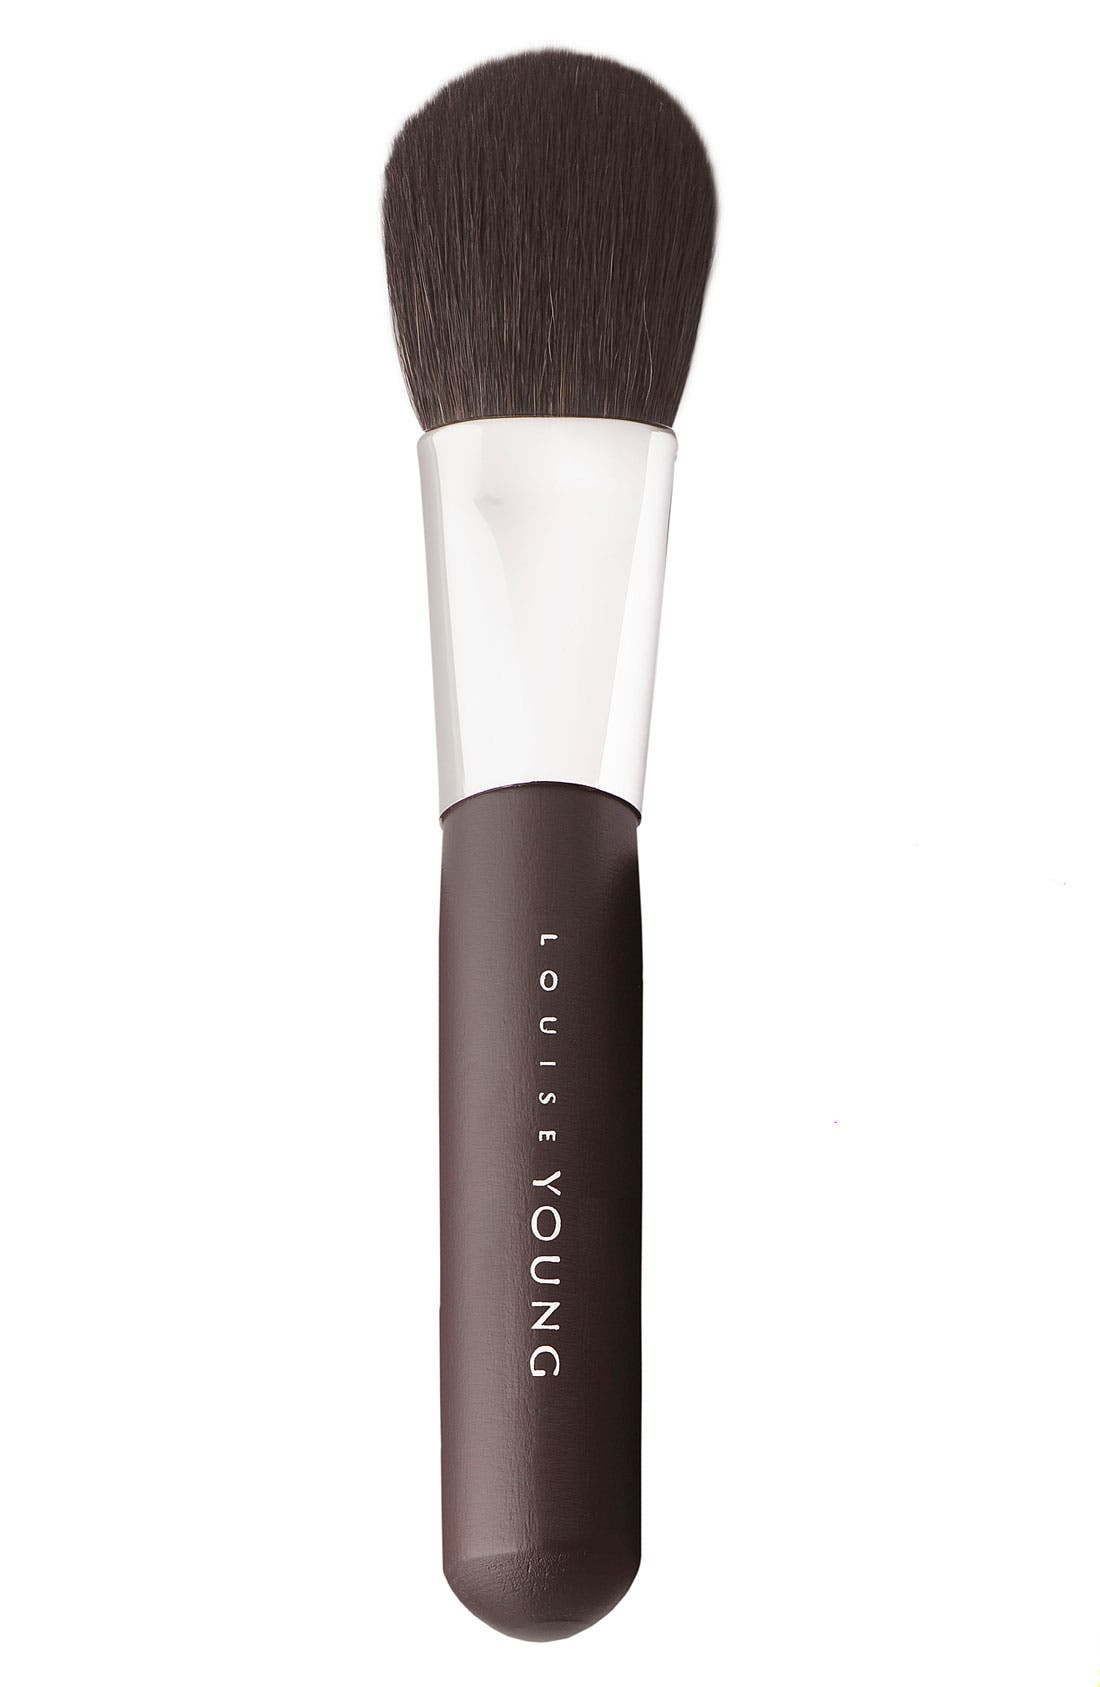 Louise Young Cosmetics LY06 Super Blusher Brush